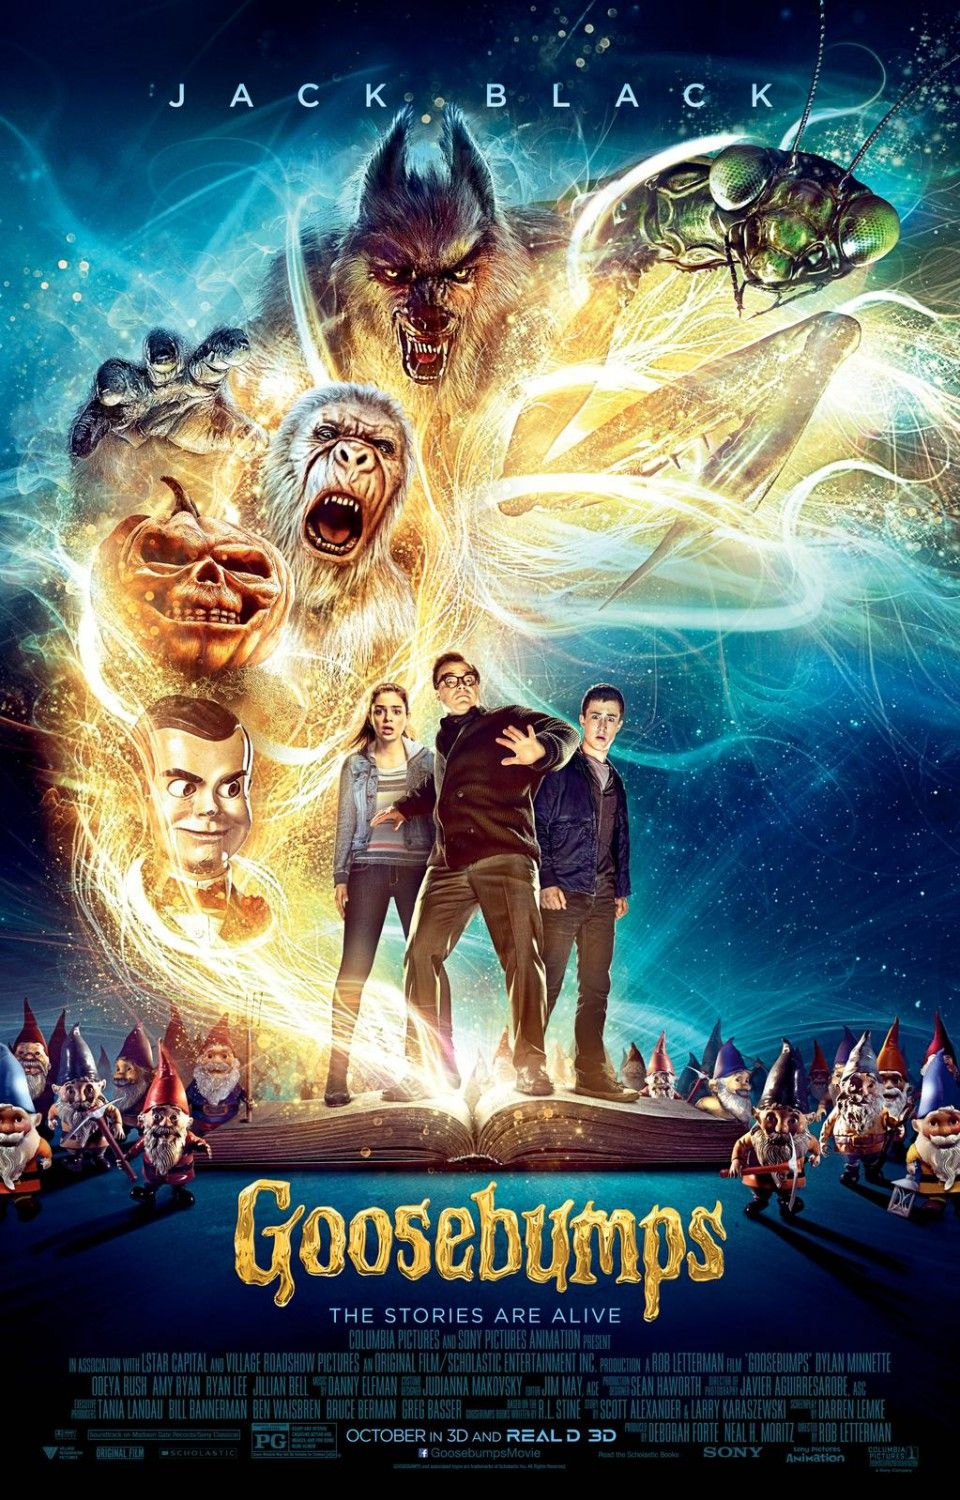 GOOSEBUMPS First Look International Trailer